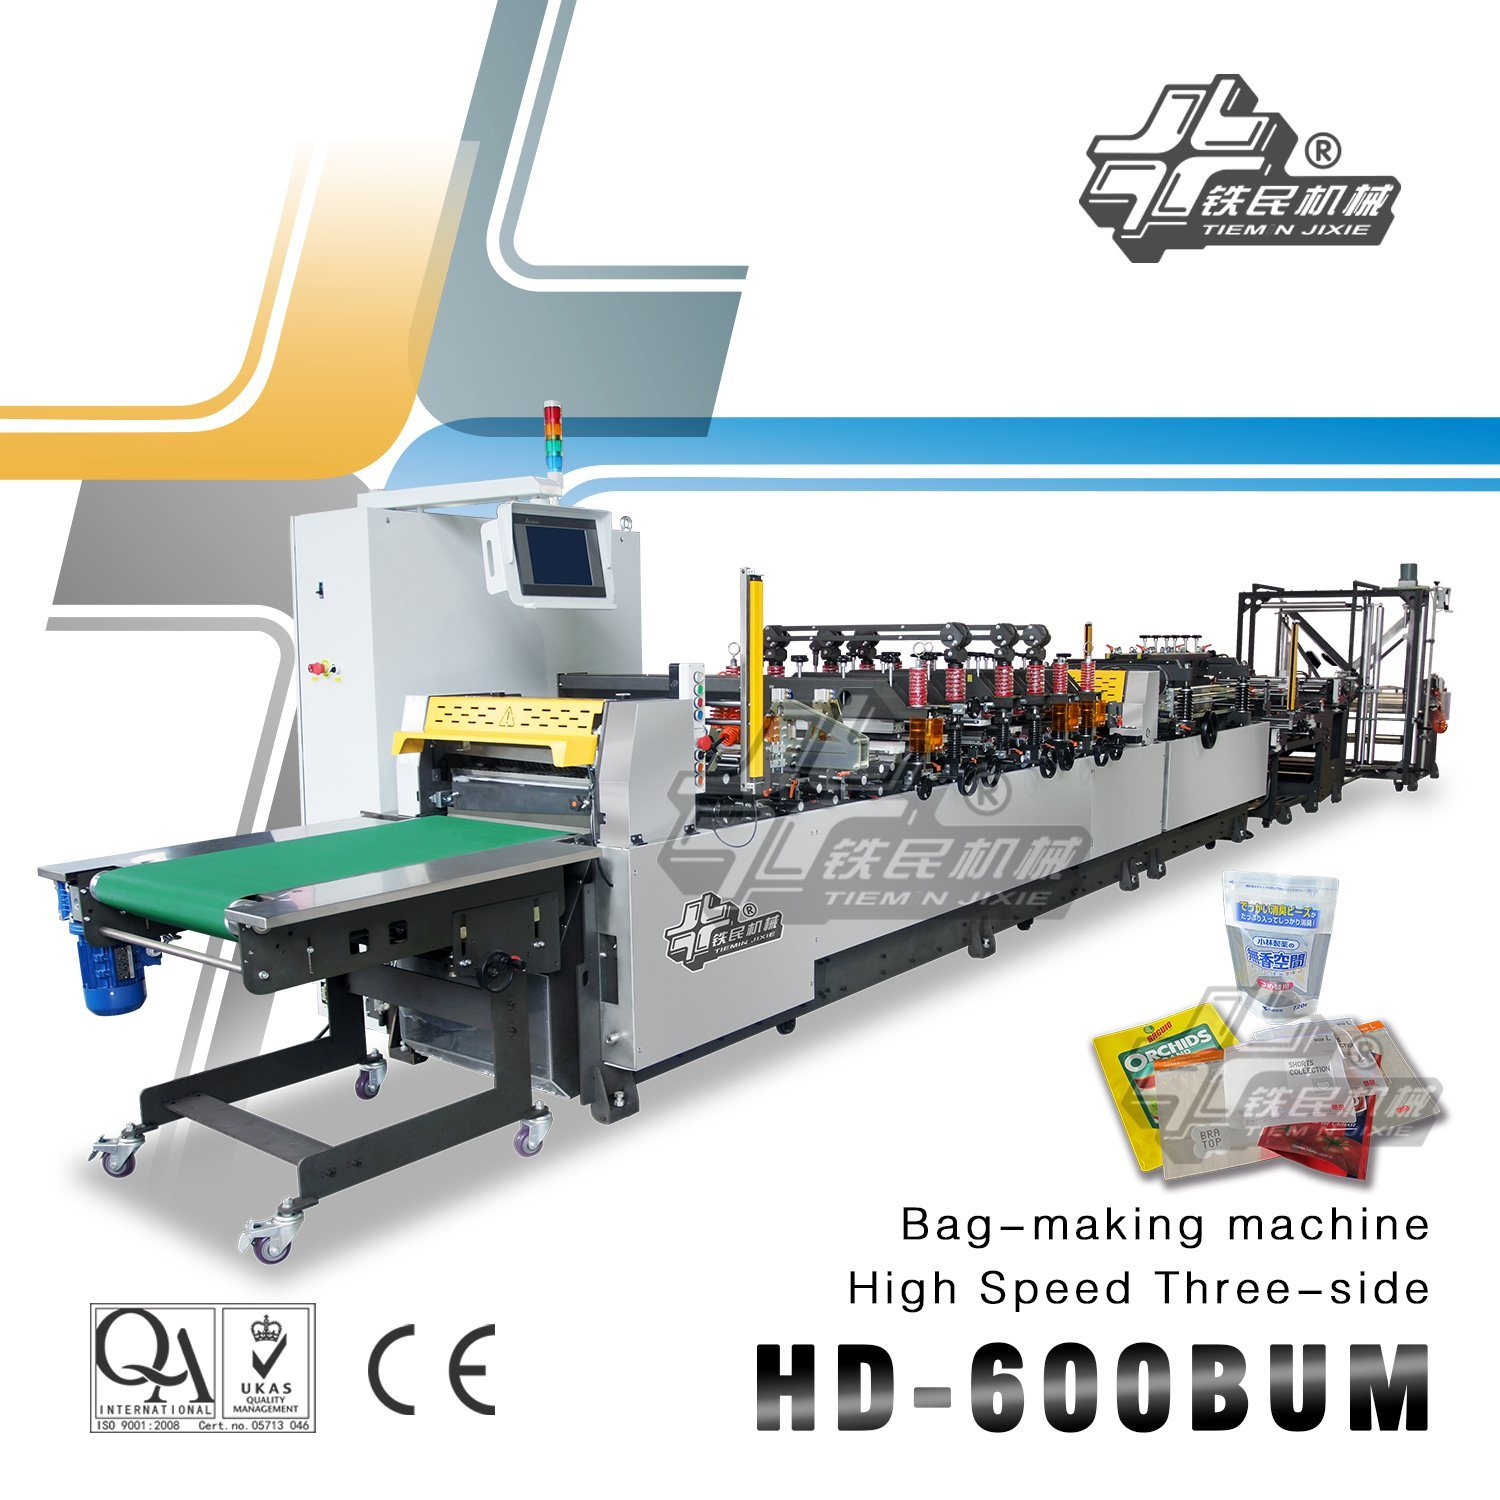 High Speed Three-Side Bag-Making Machine (Automatic One Piece Structure Stand Pouch Bag-Making Machine) HD-600um